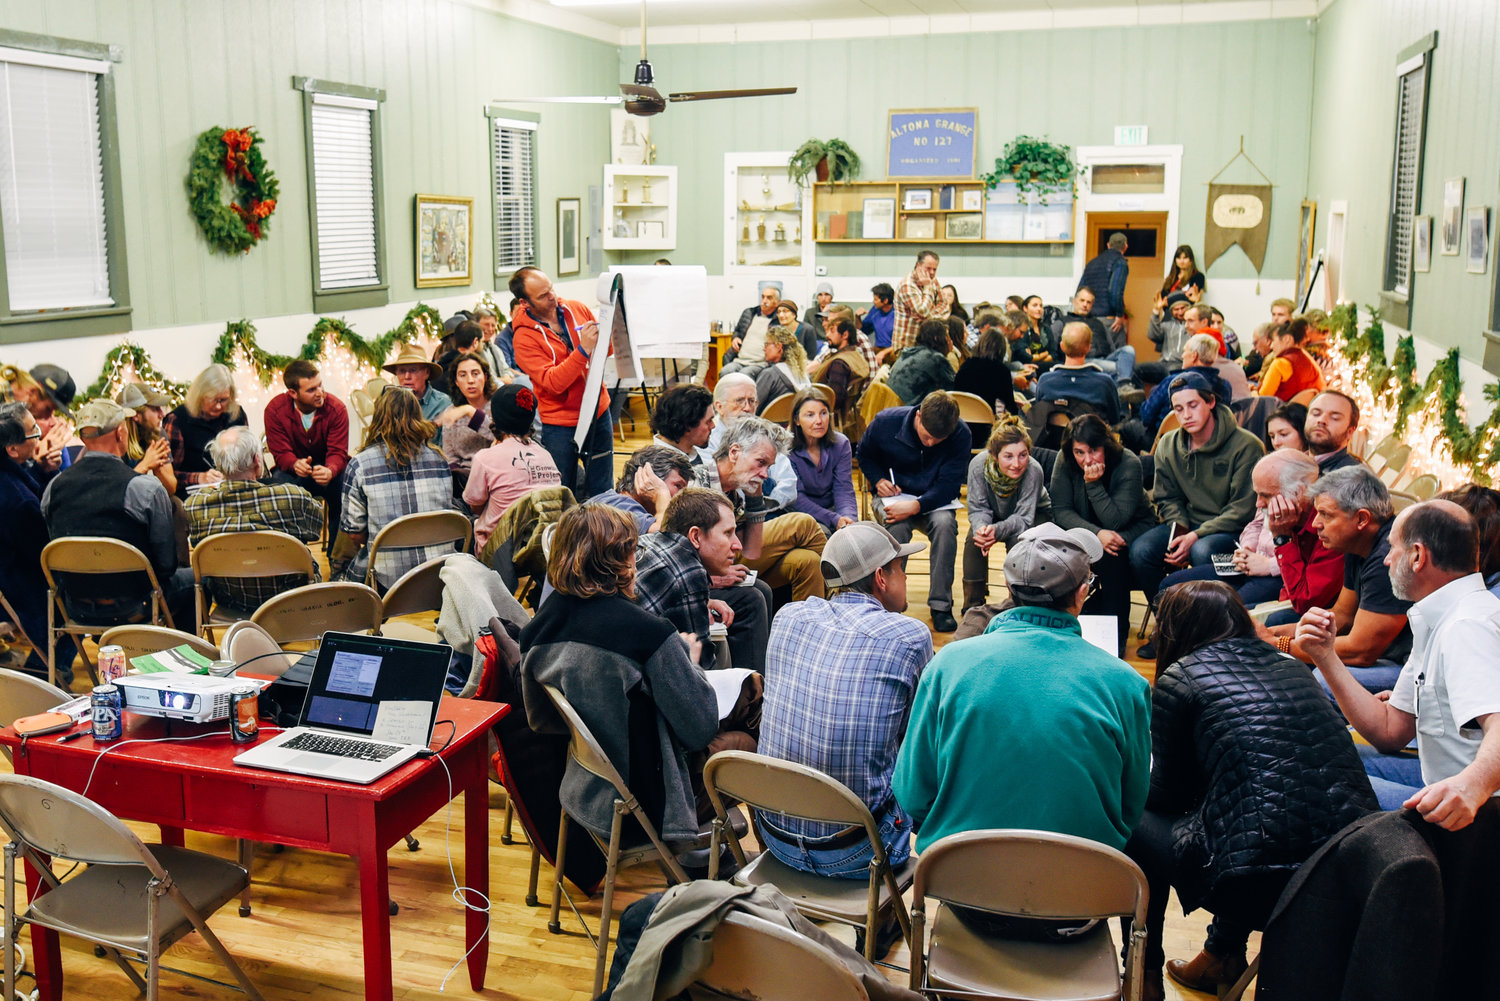 Farm Forum #3 - The Altona Grange is currently the home of the Mad Ag Farm Forums, held monthly.